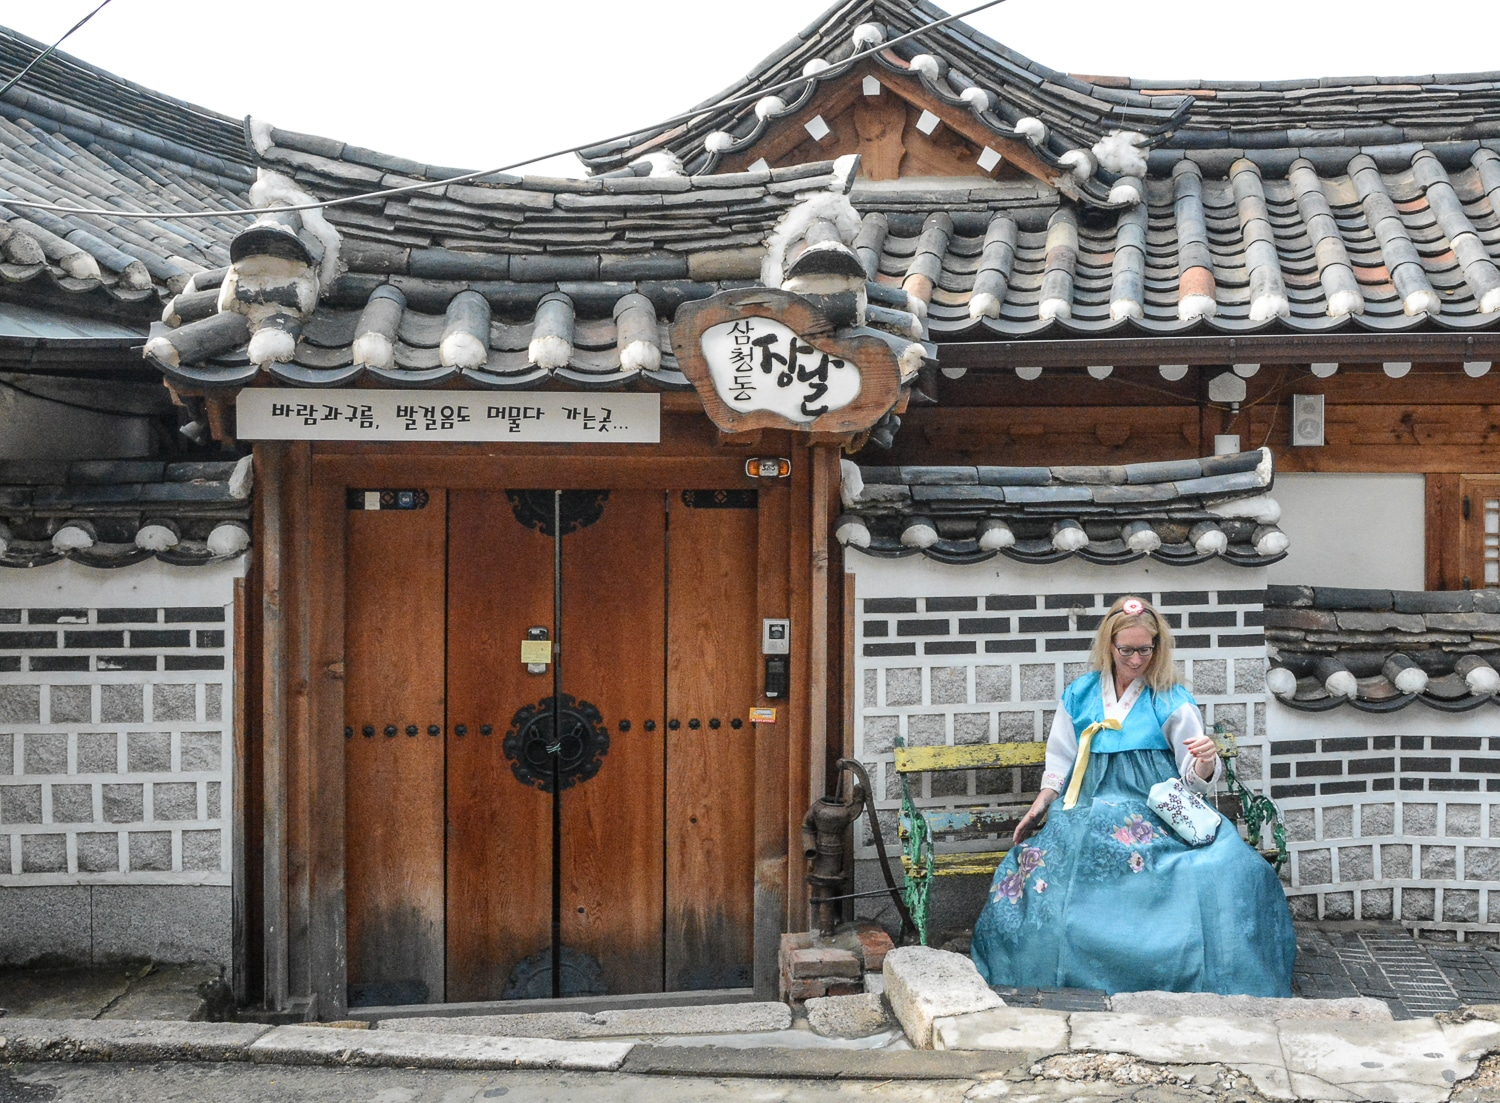 Seoul Tipps und Sightseeing in Seoul: 12 Highlights in Koreas Hauptstadt - Bukchon Hanok Village